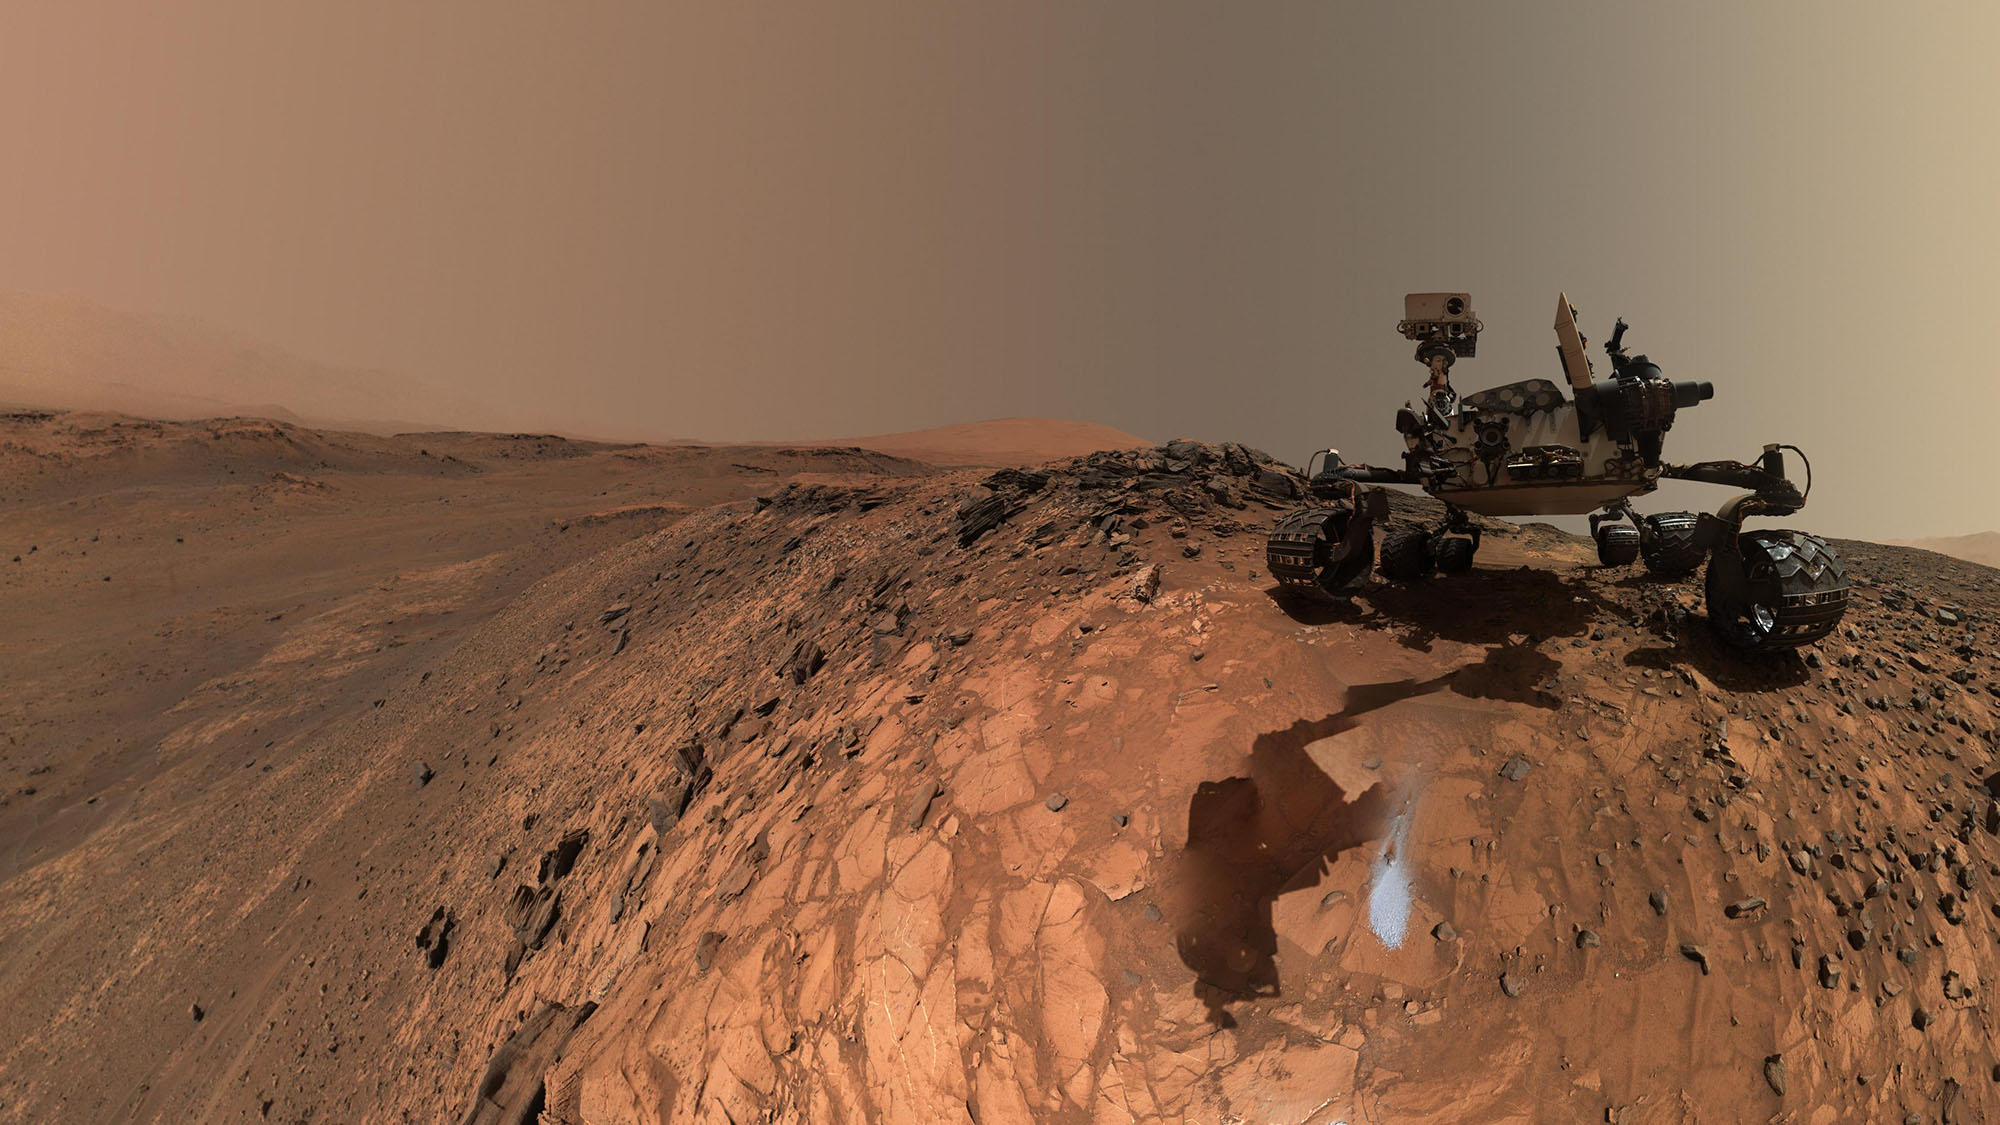 nasa finds message from god on mars - HD2000×1125